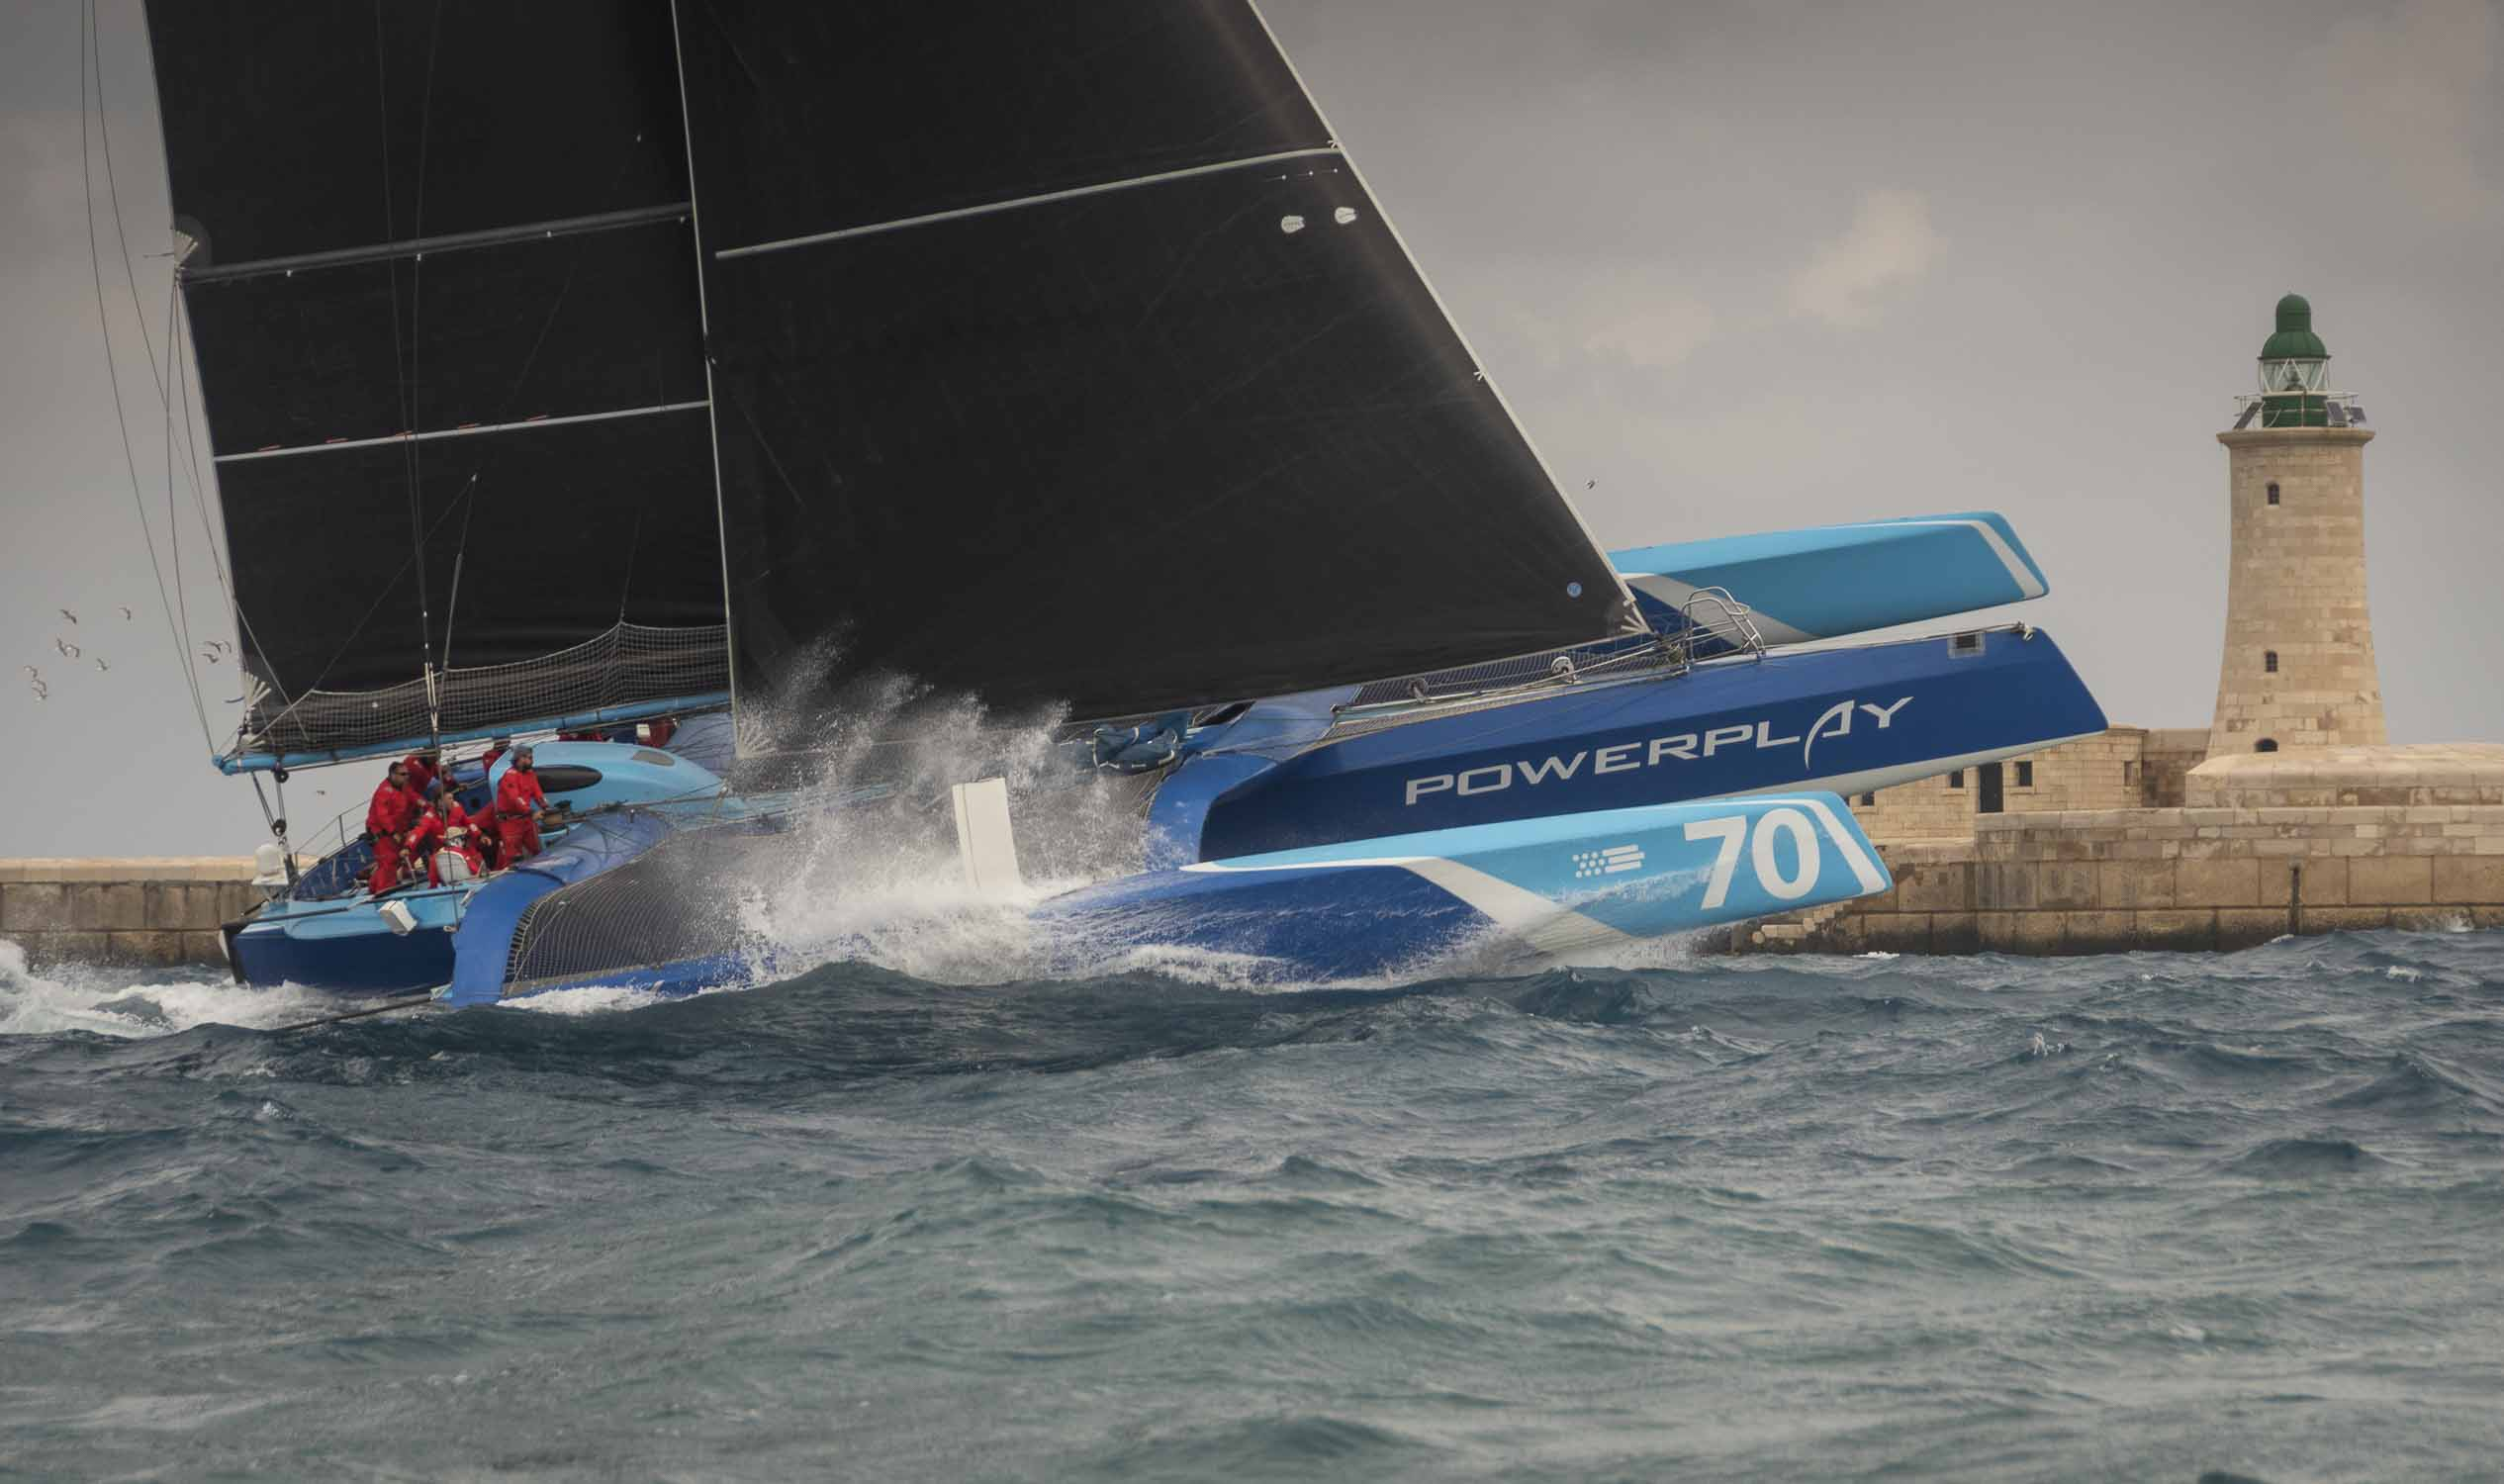 Skippered by Ned Collier Wakefield, Peter Cunningham's MOD70 PowerPlay will compete alongside Maserati (ITA) and Argo (USA) Credit: boat-solutions.com